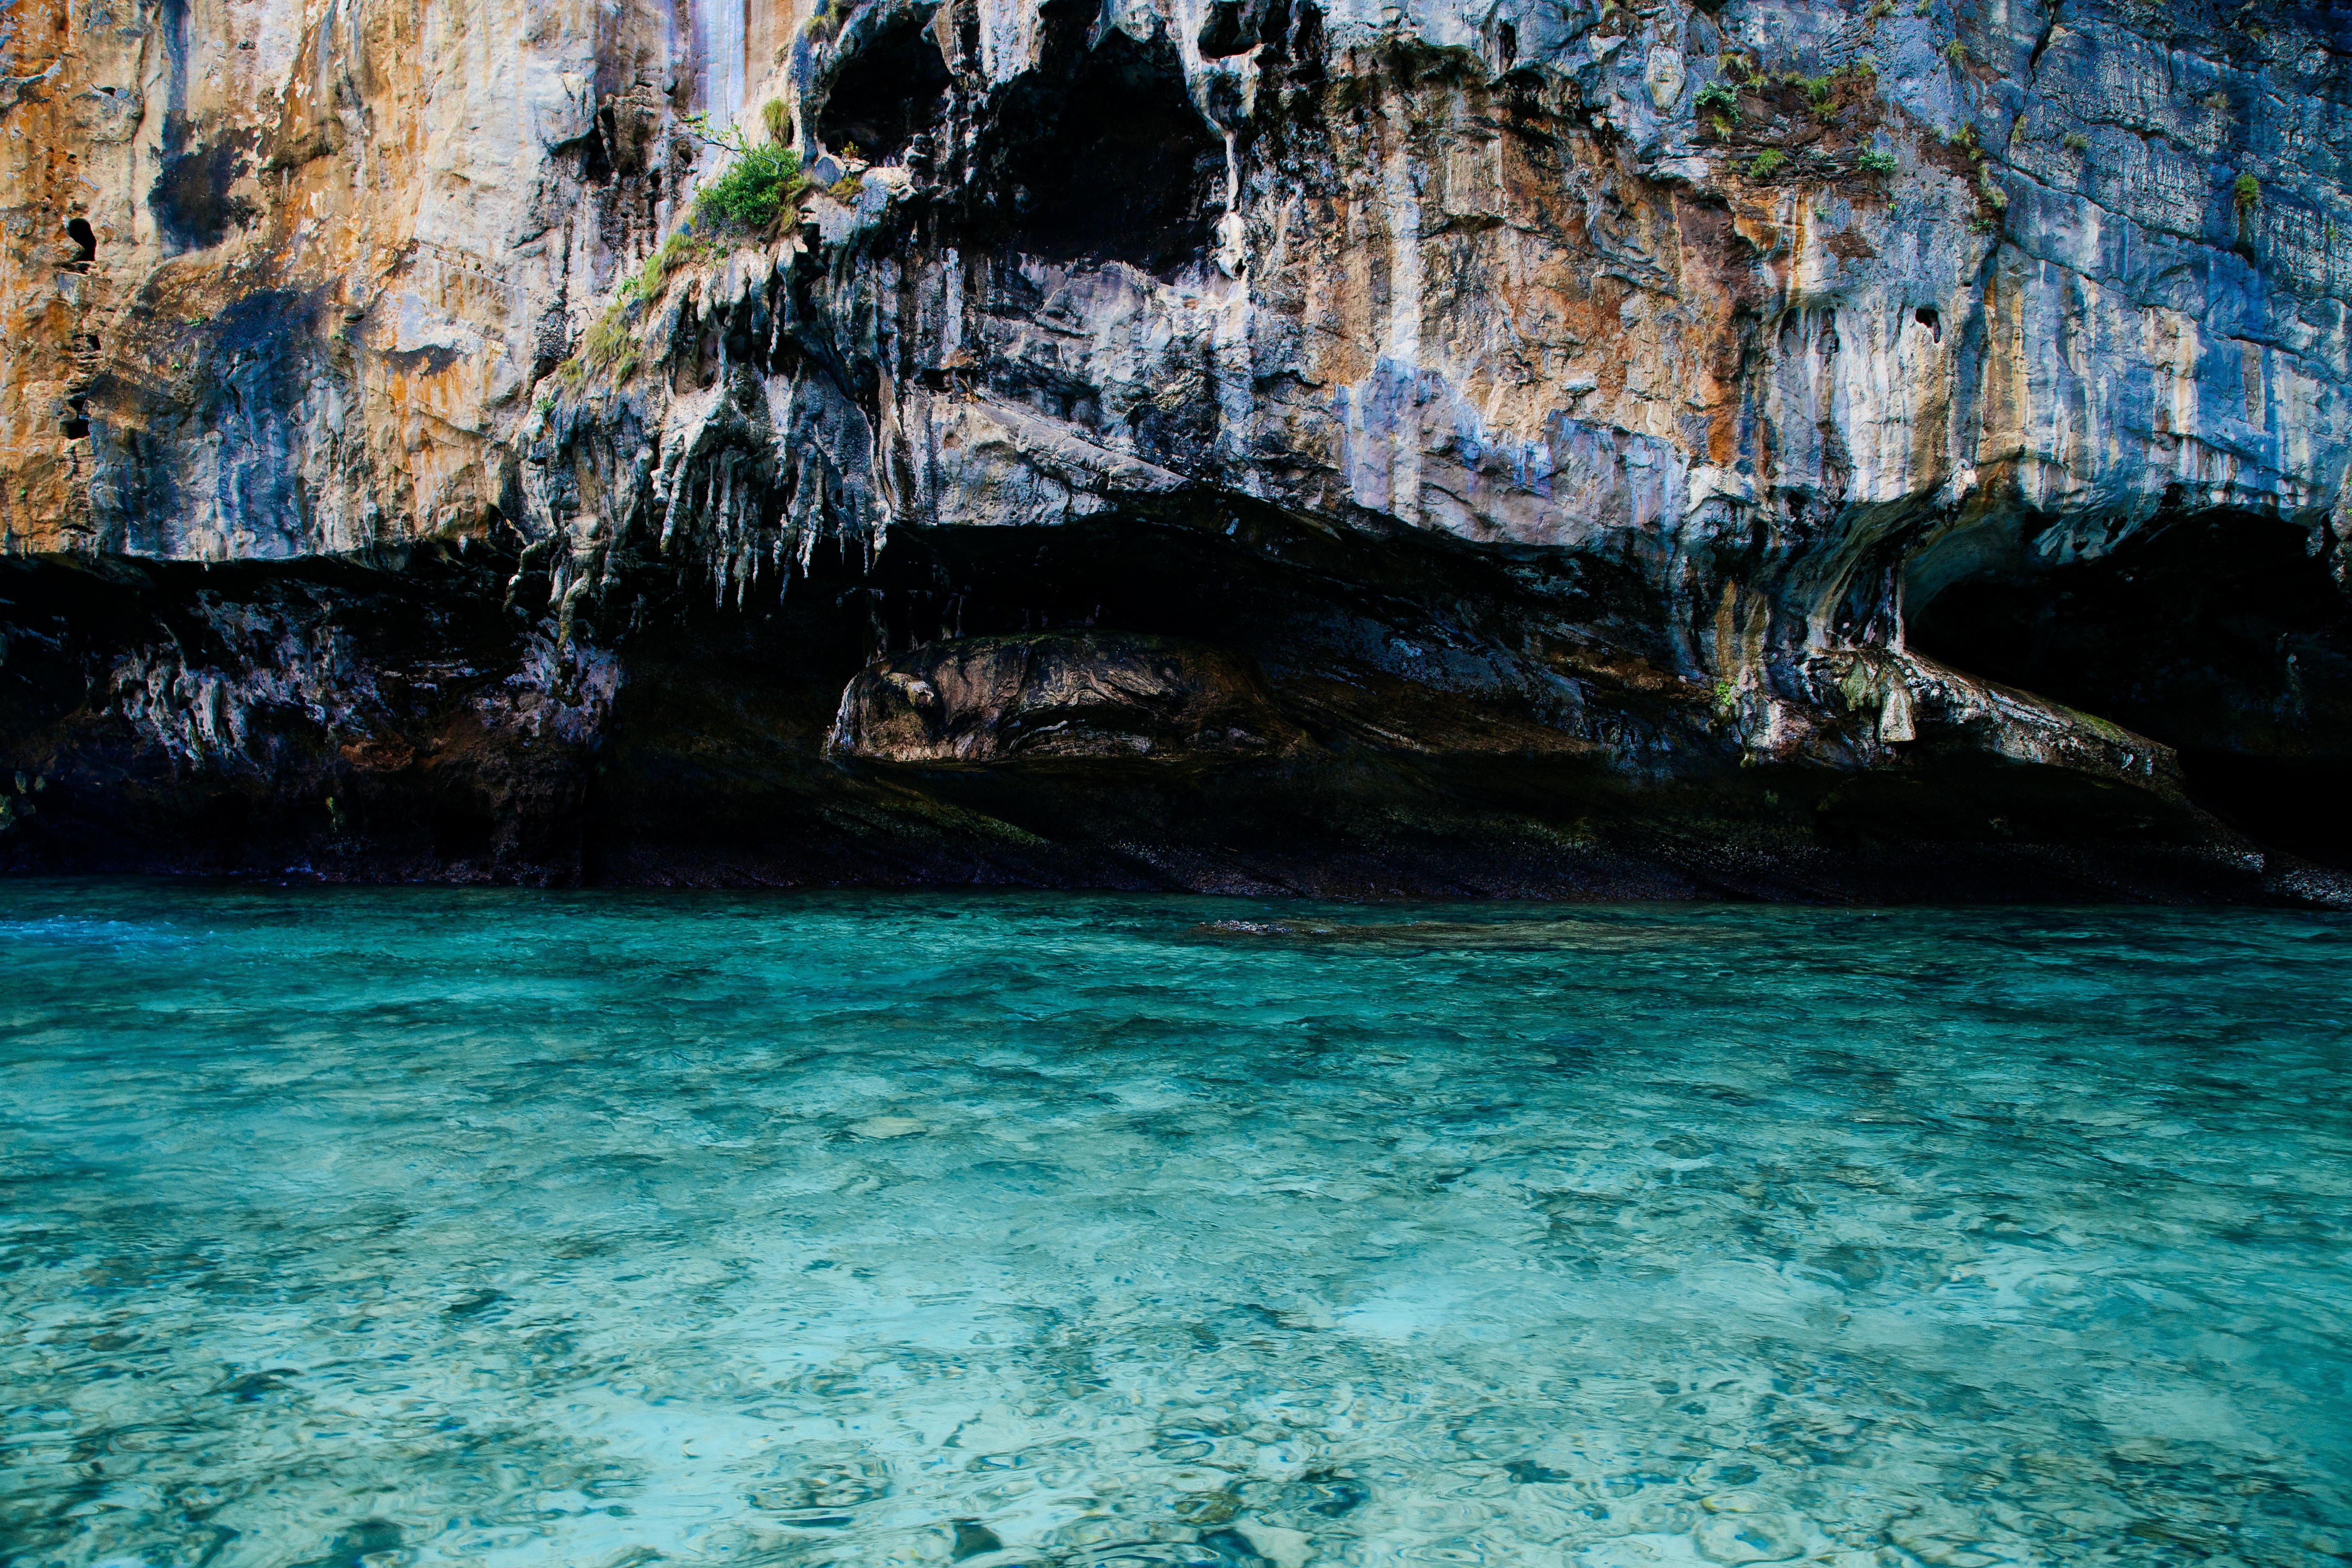 Magnificent blue and green rock face behind azure water